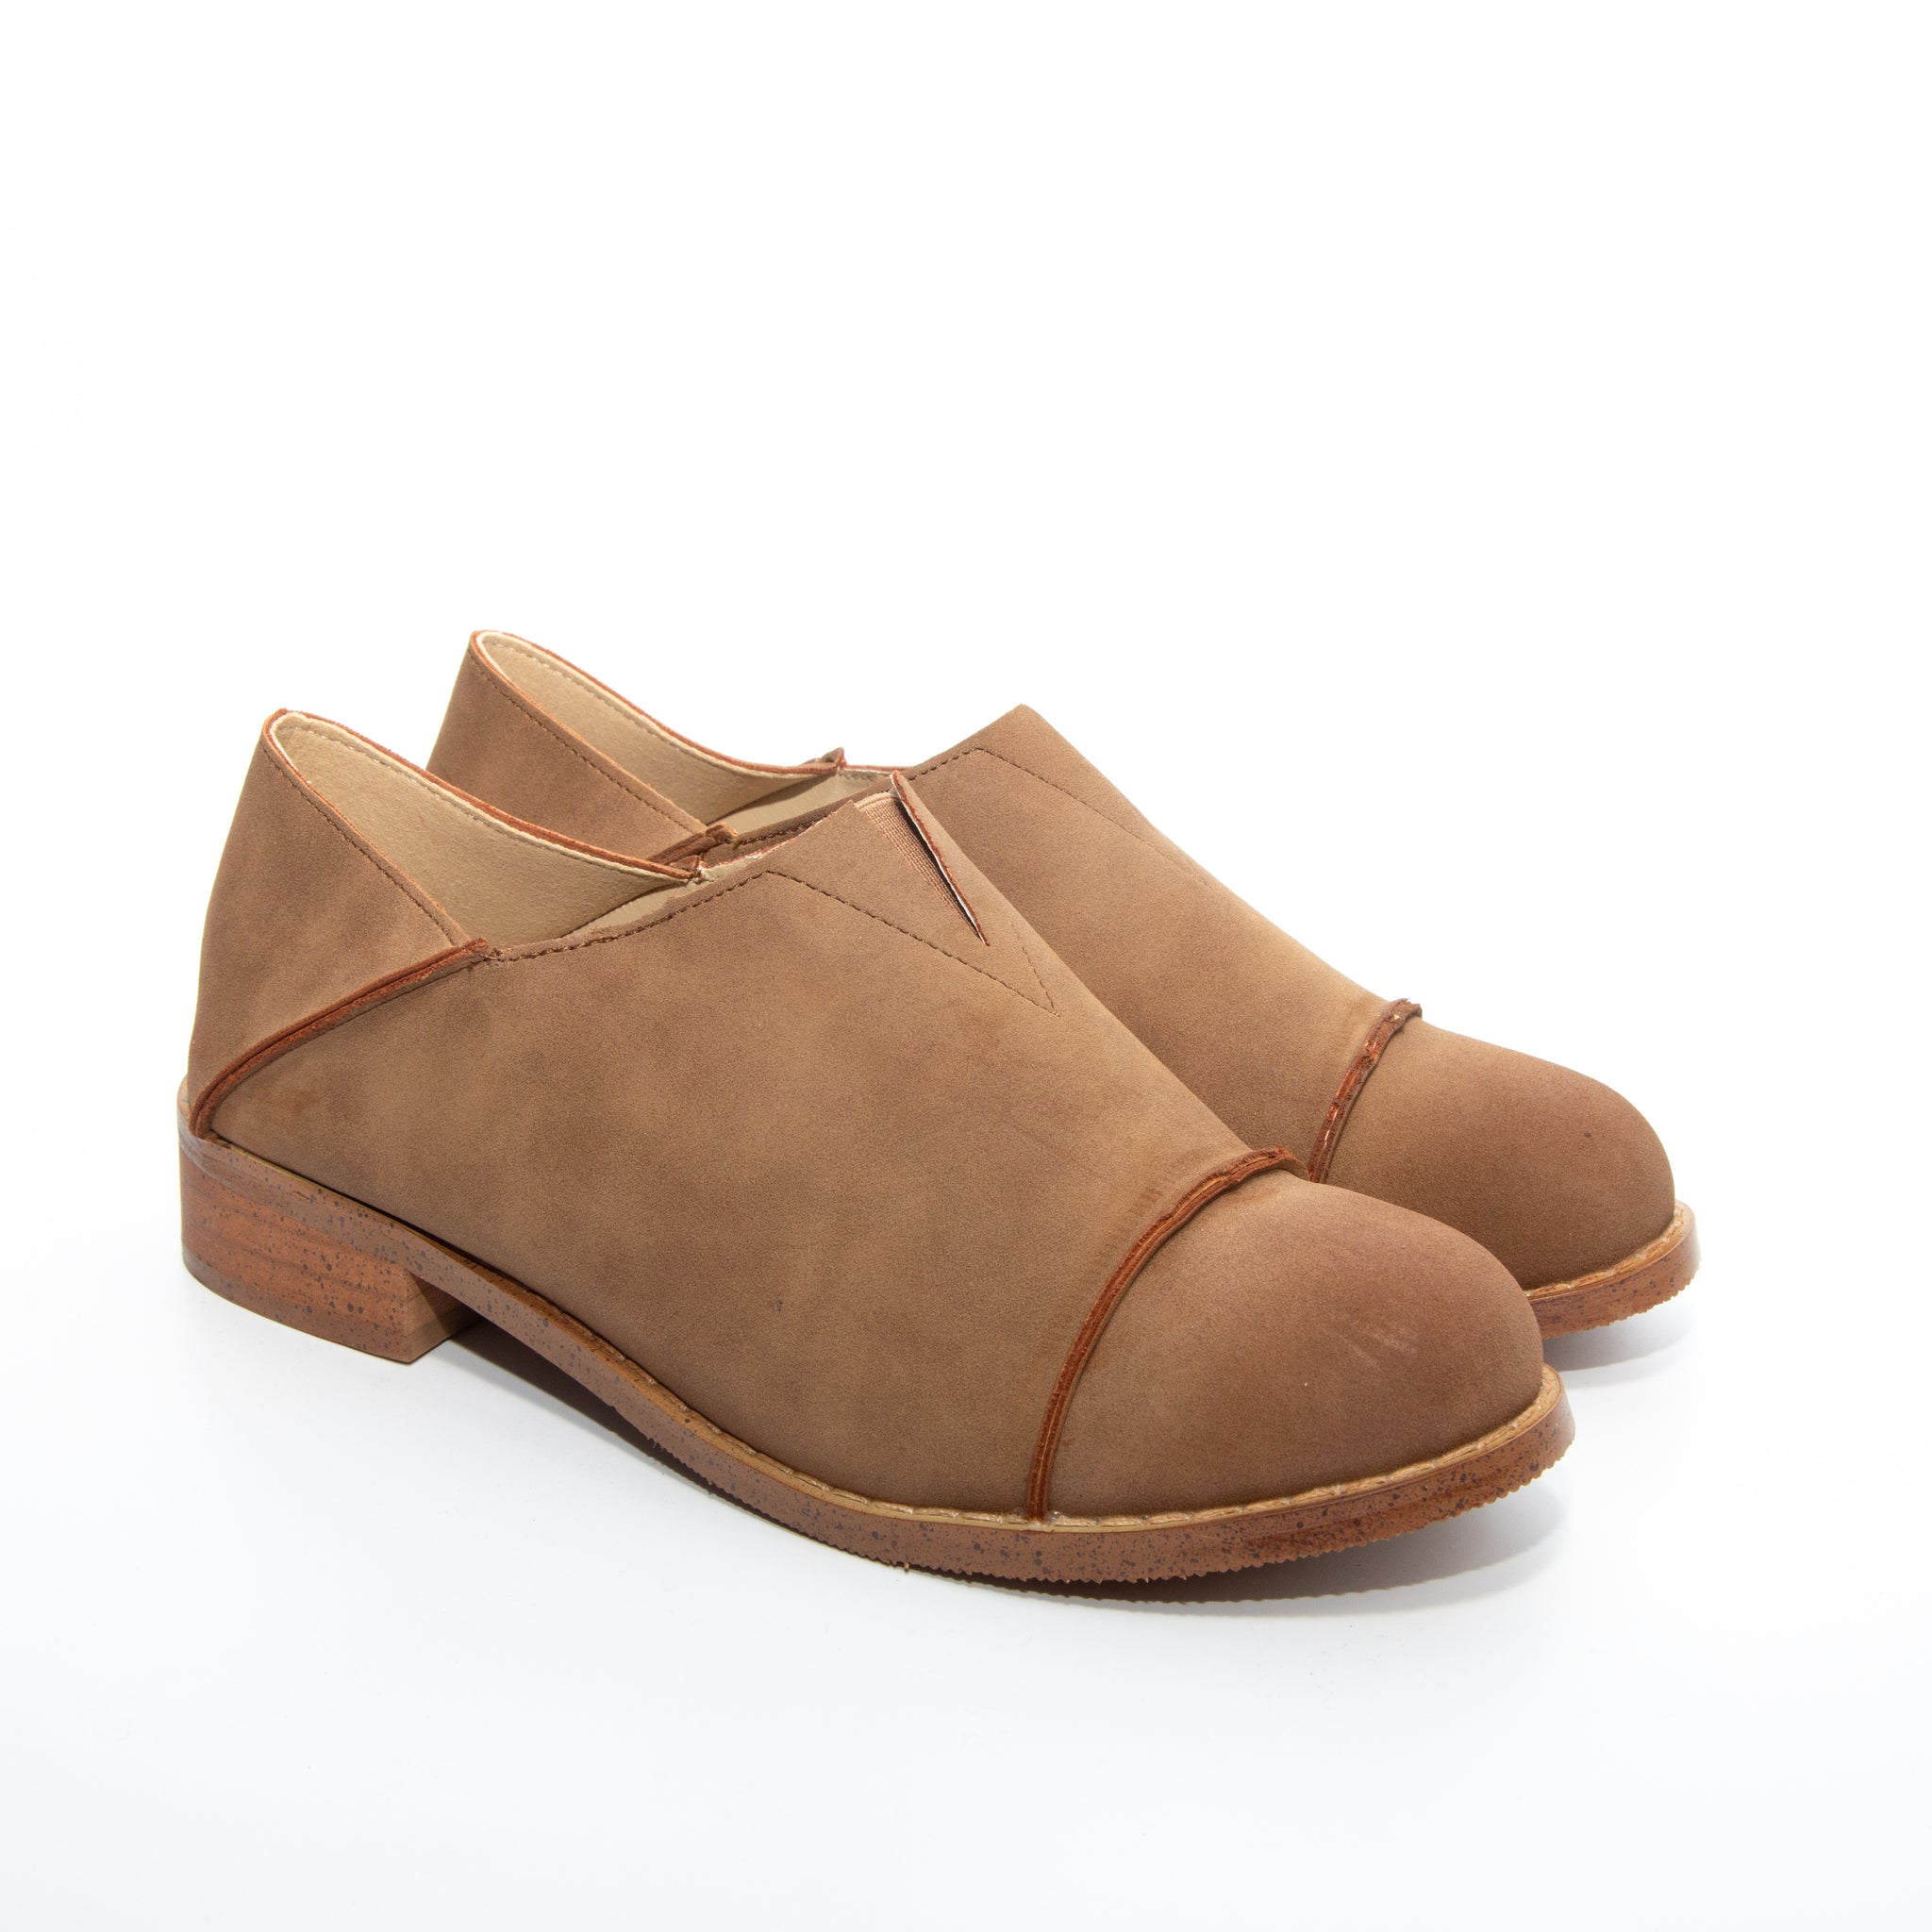 Diva by Dolce Nome | Slip-On Oxford Loafers in Taupe (pair view)